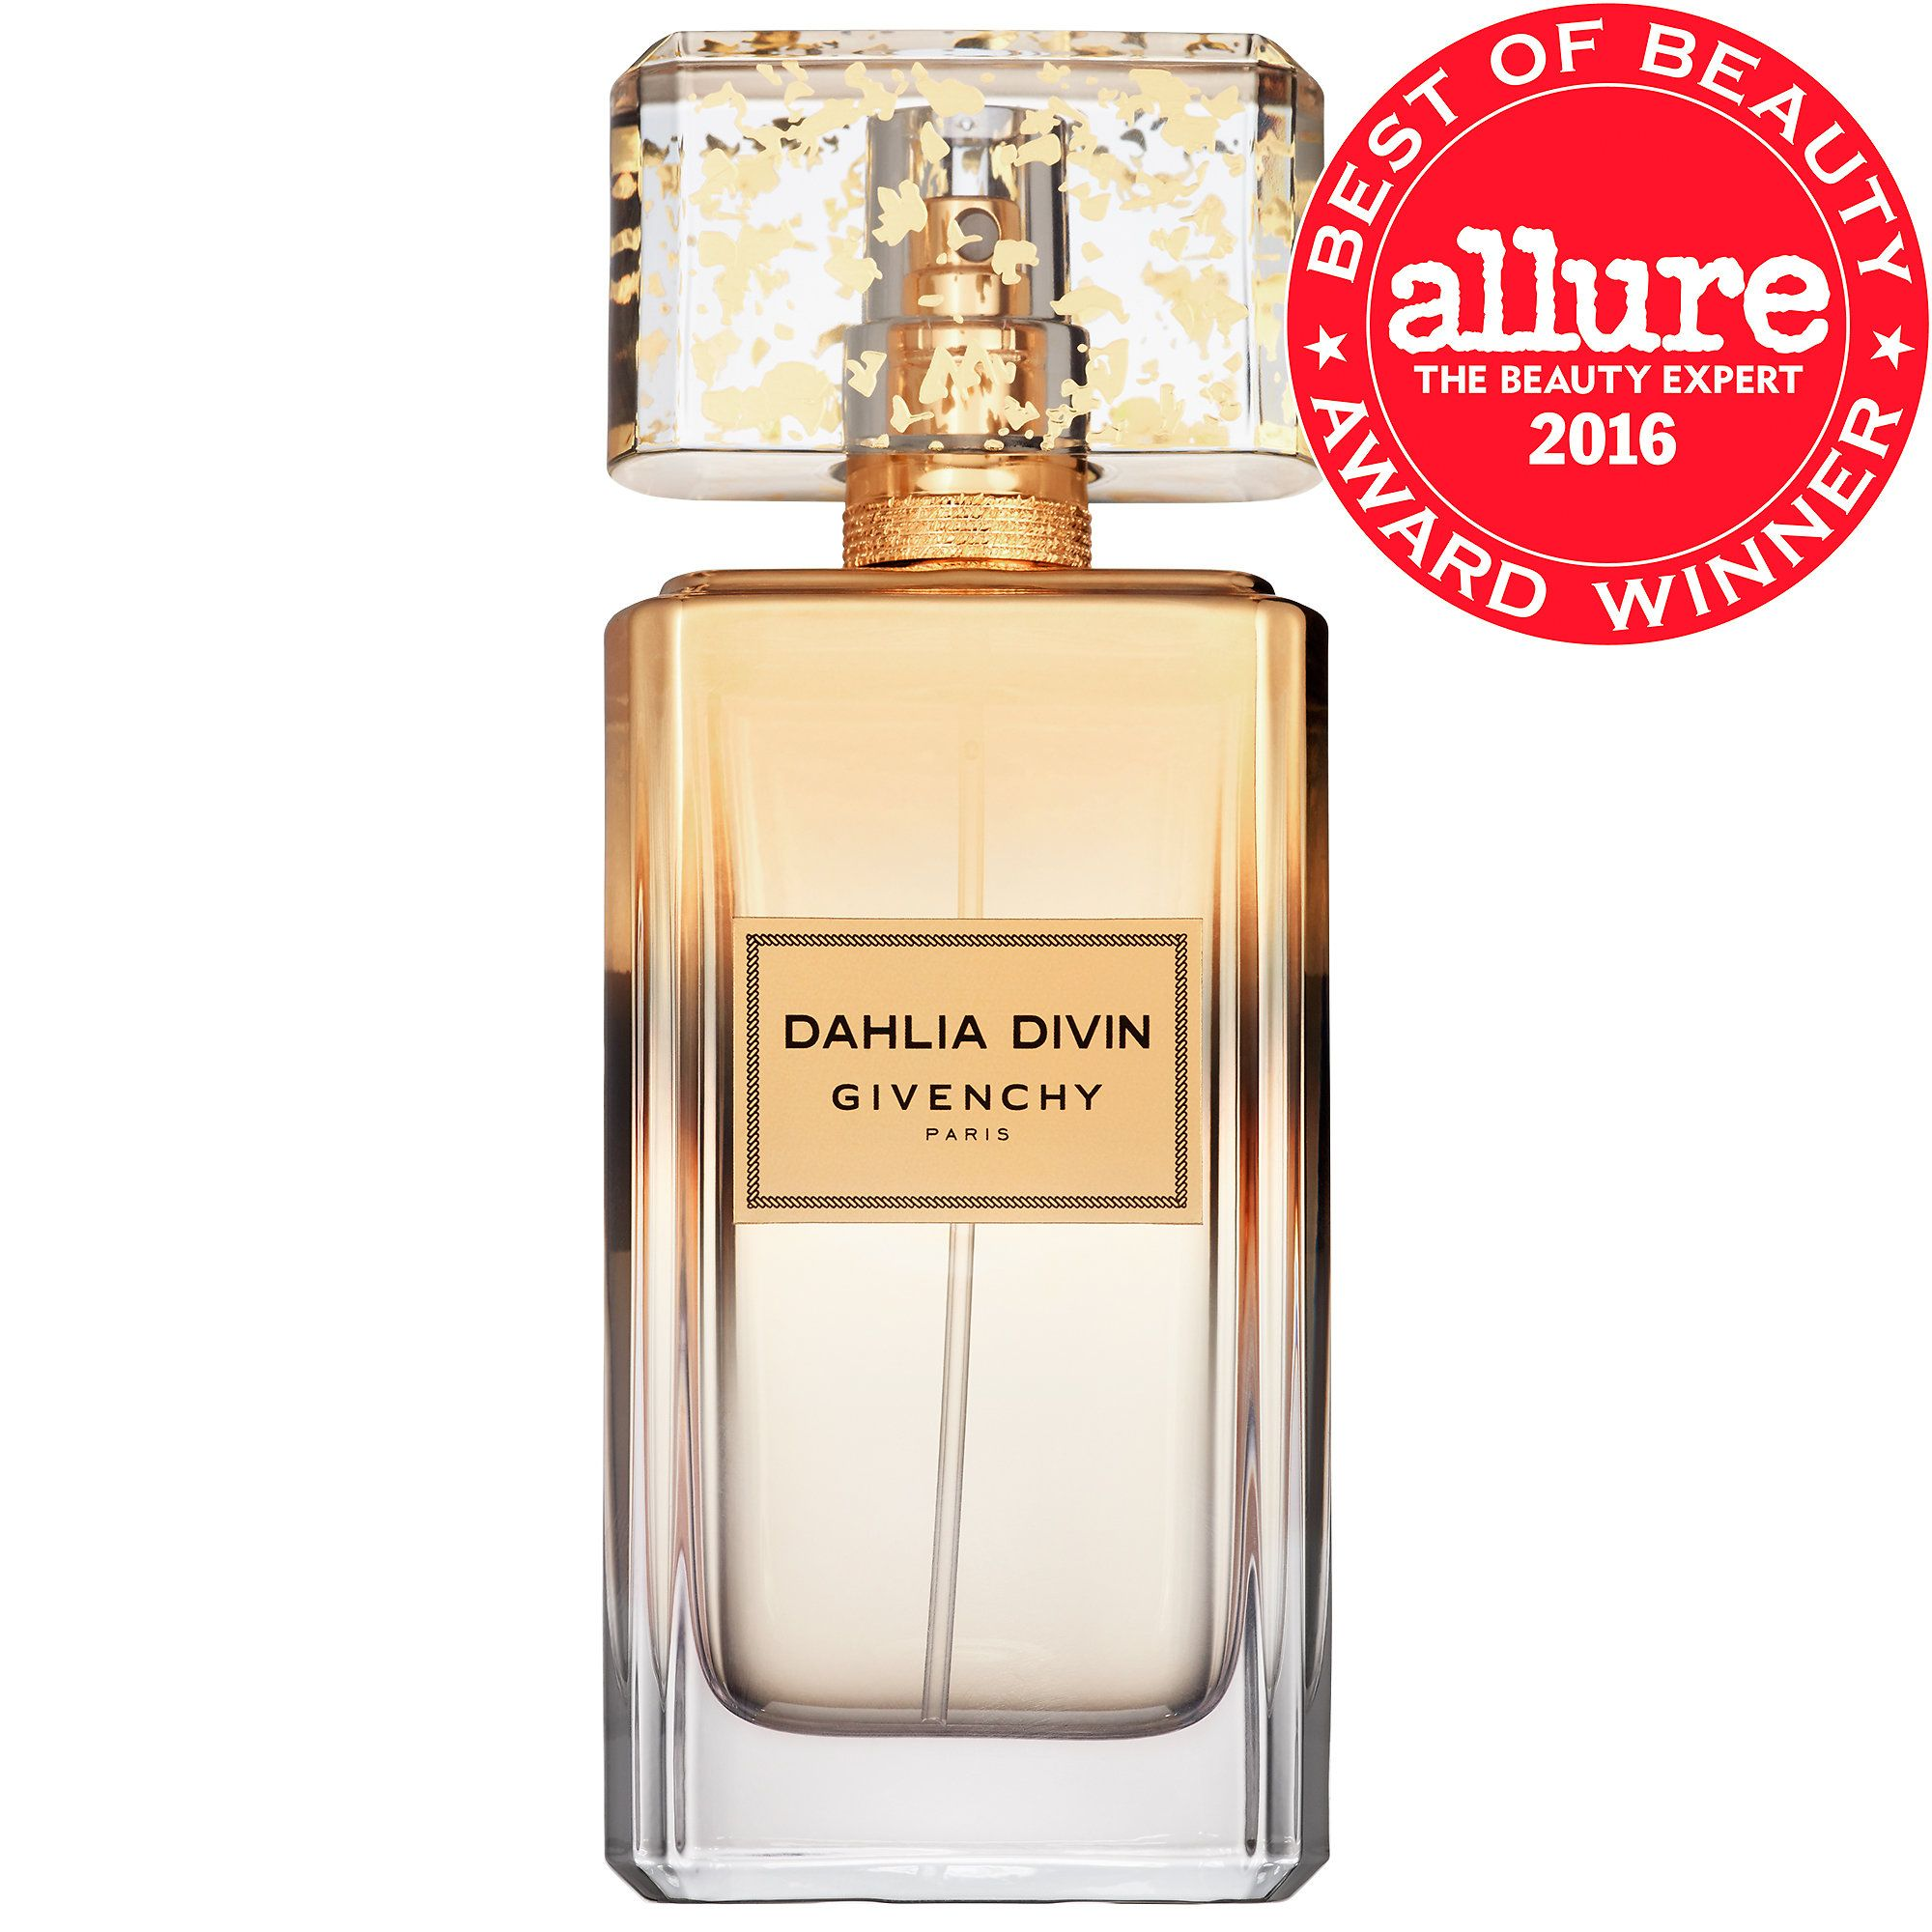 Shop Dahlia Divin Le Nectar de Parfum by Givenchy at Sephora. This fragrance is as luxurious as gold leaf with notes of mimosa, jasmine, rose, and tonka bean.